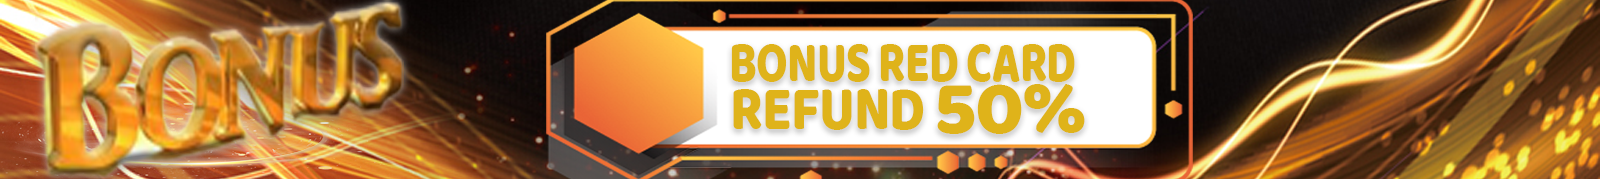 Bonus Red Card Refund 50%